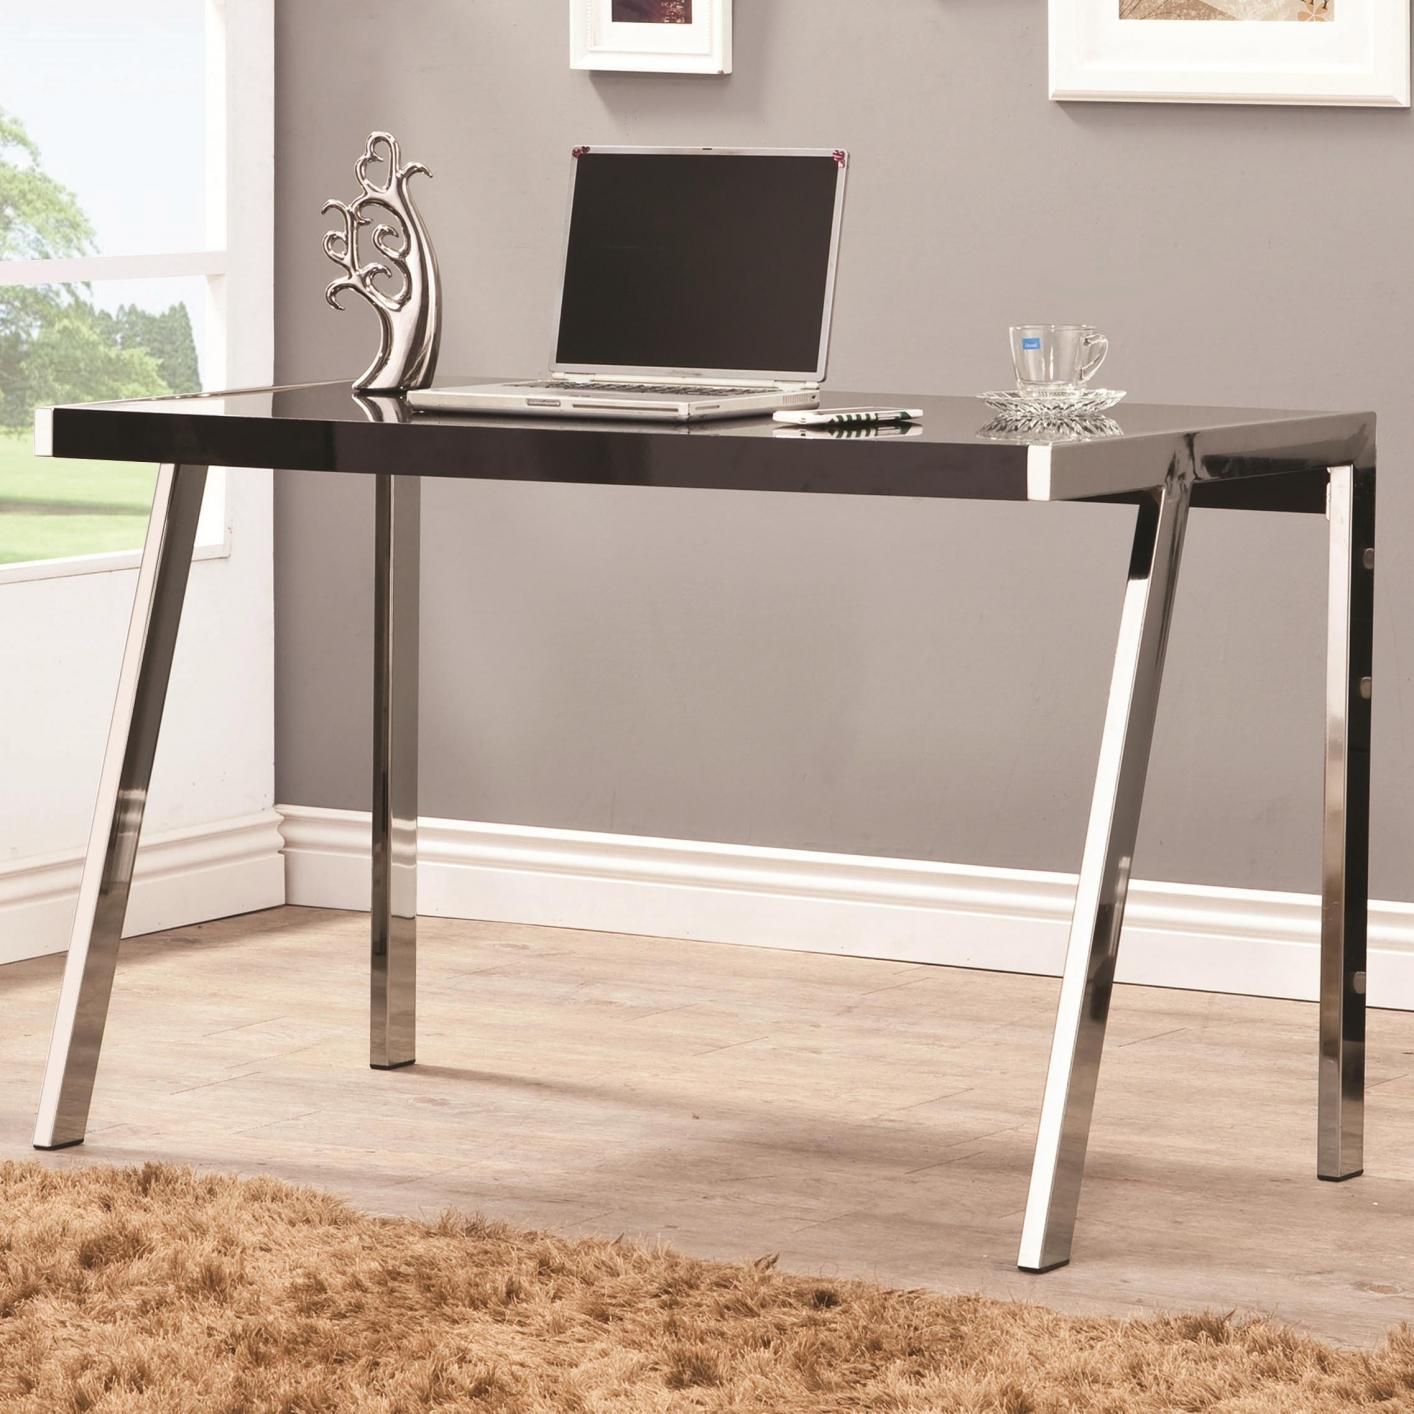 silver wood office desk - steal-a-sofa furniture outlet los angeles ca